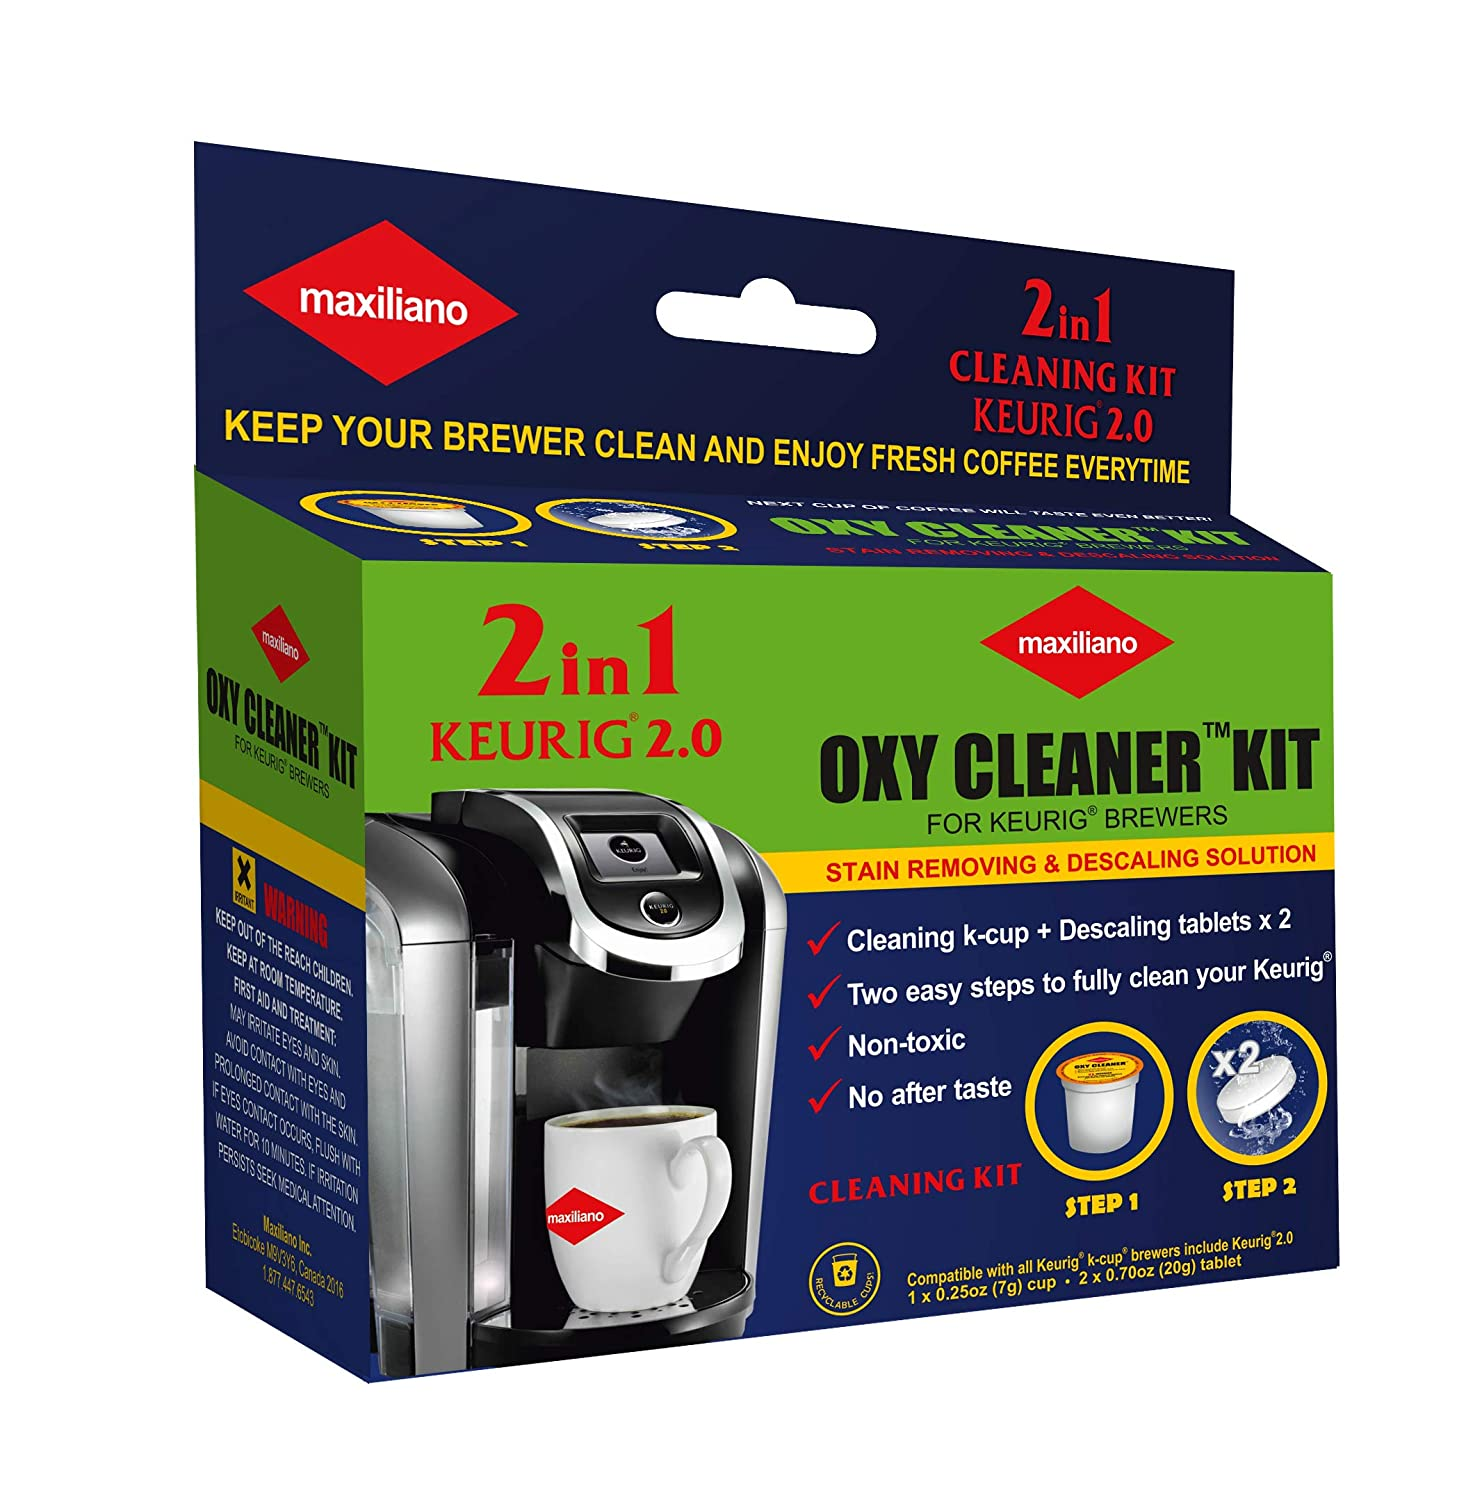 Maxiliano Oxy Cleaner Kit 2 in 1 Professional Descaling For All K-Cup Keurig 2.0 Brewers, Biodegradable, Full Cycle Cleaning and Descaler Solution 81gQcKKzzSL